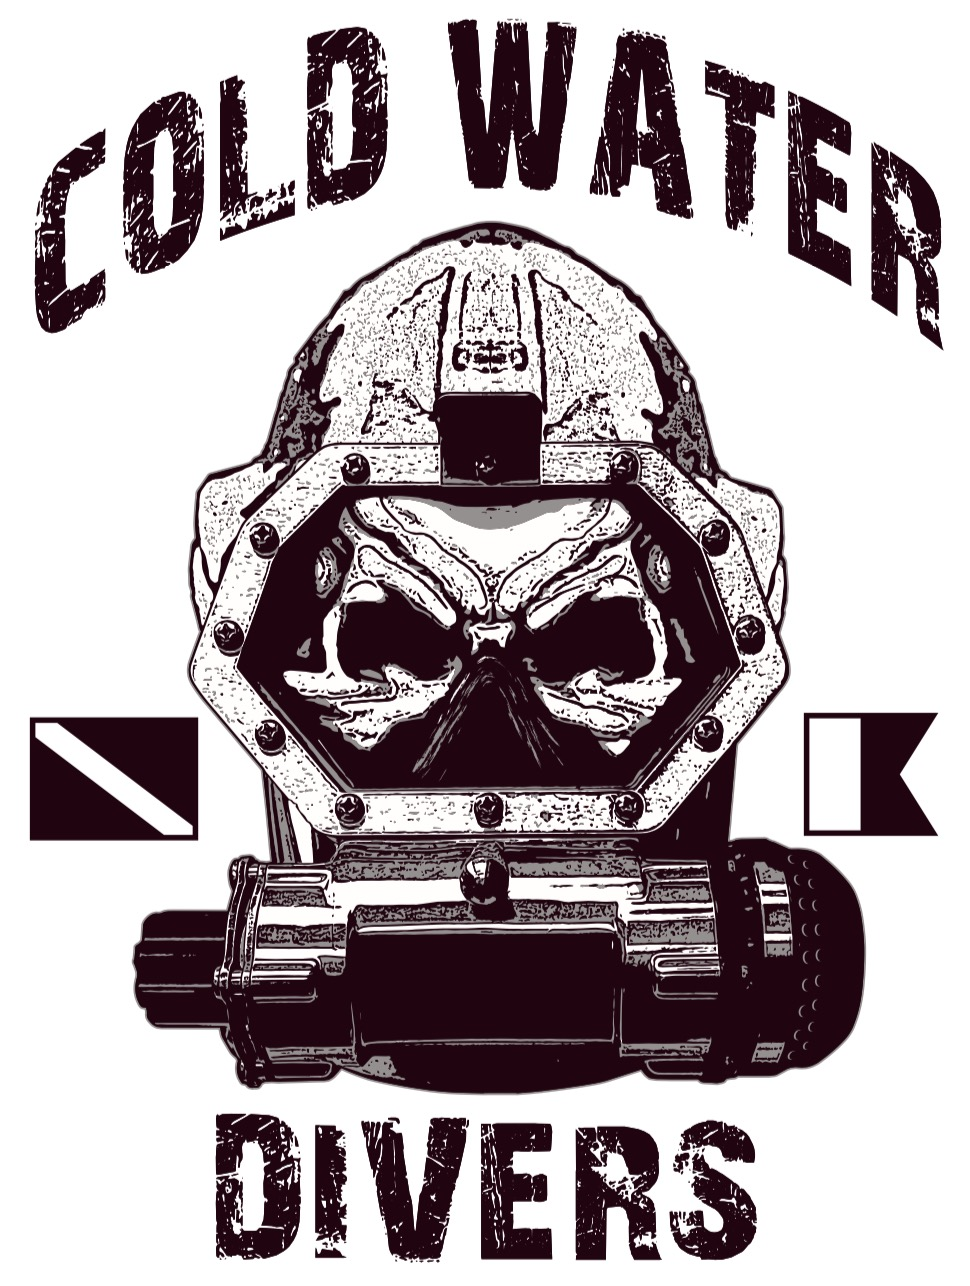 Cold Water Divers Inc, COLD WATER DIVERS Inc., COLD WATER DIVERS Inc..., COLD WATER DIVERS Inc...